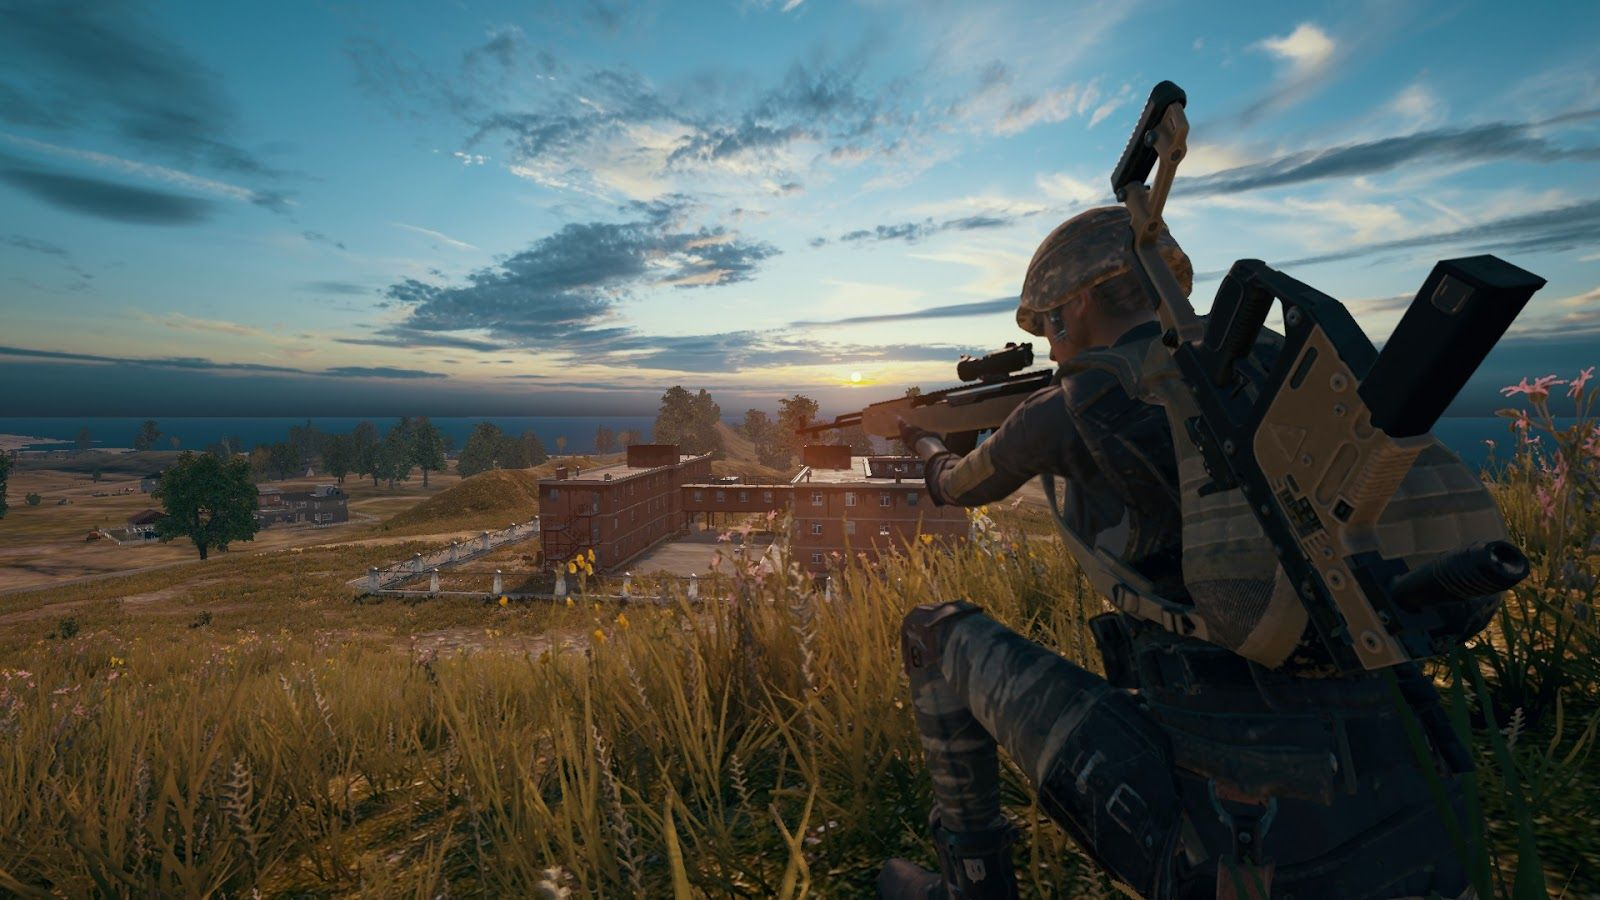 Pubg Ultra Hd Coming Soon: Top Free PUBG Sniper Backgrounds